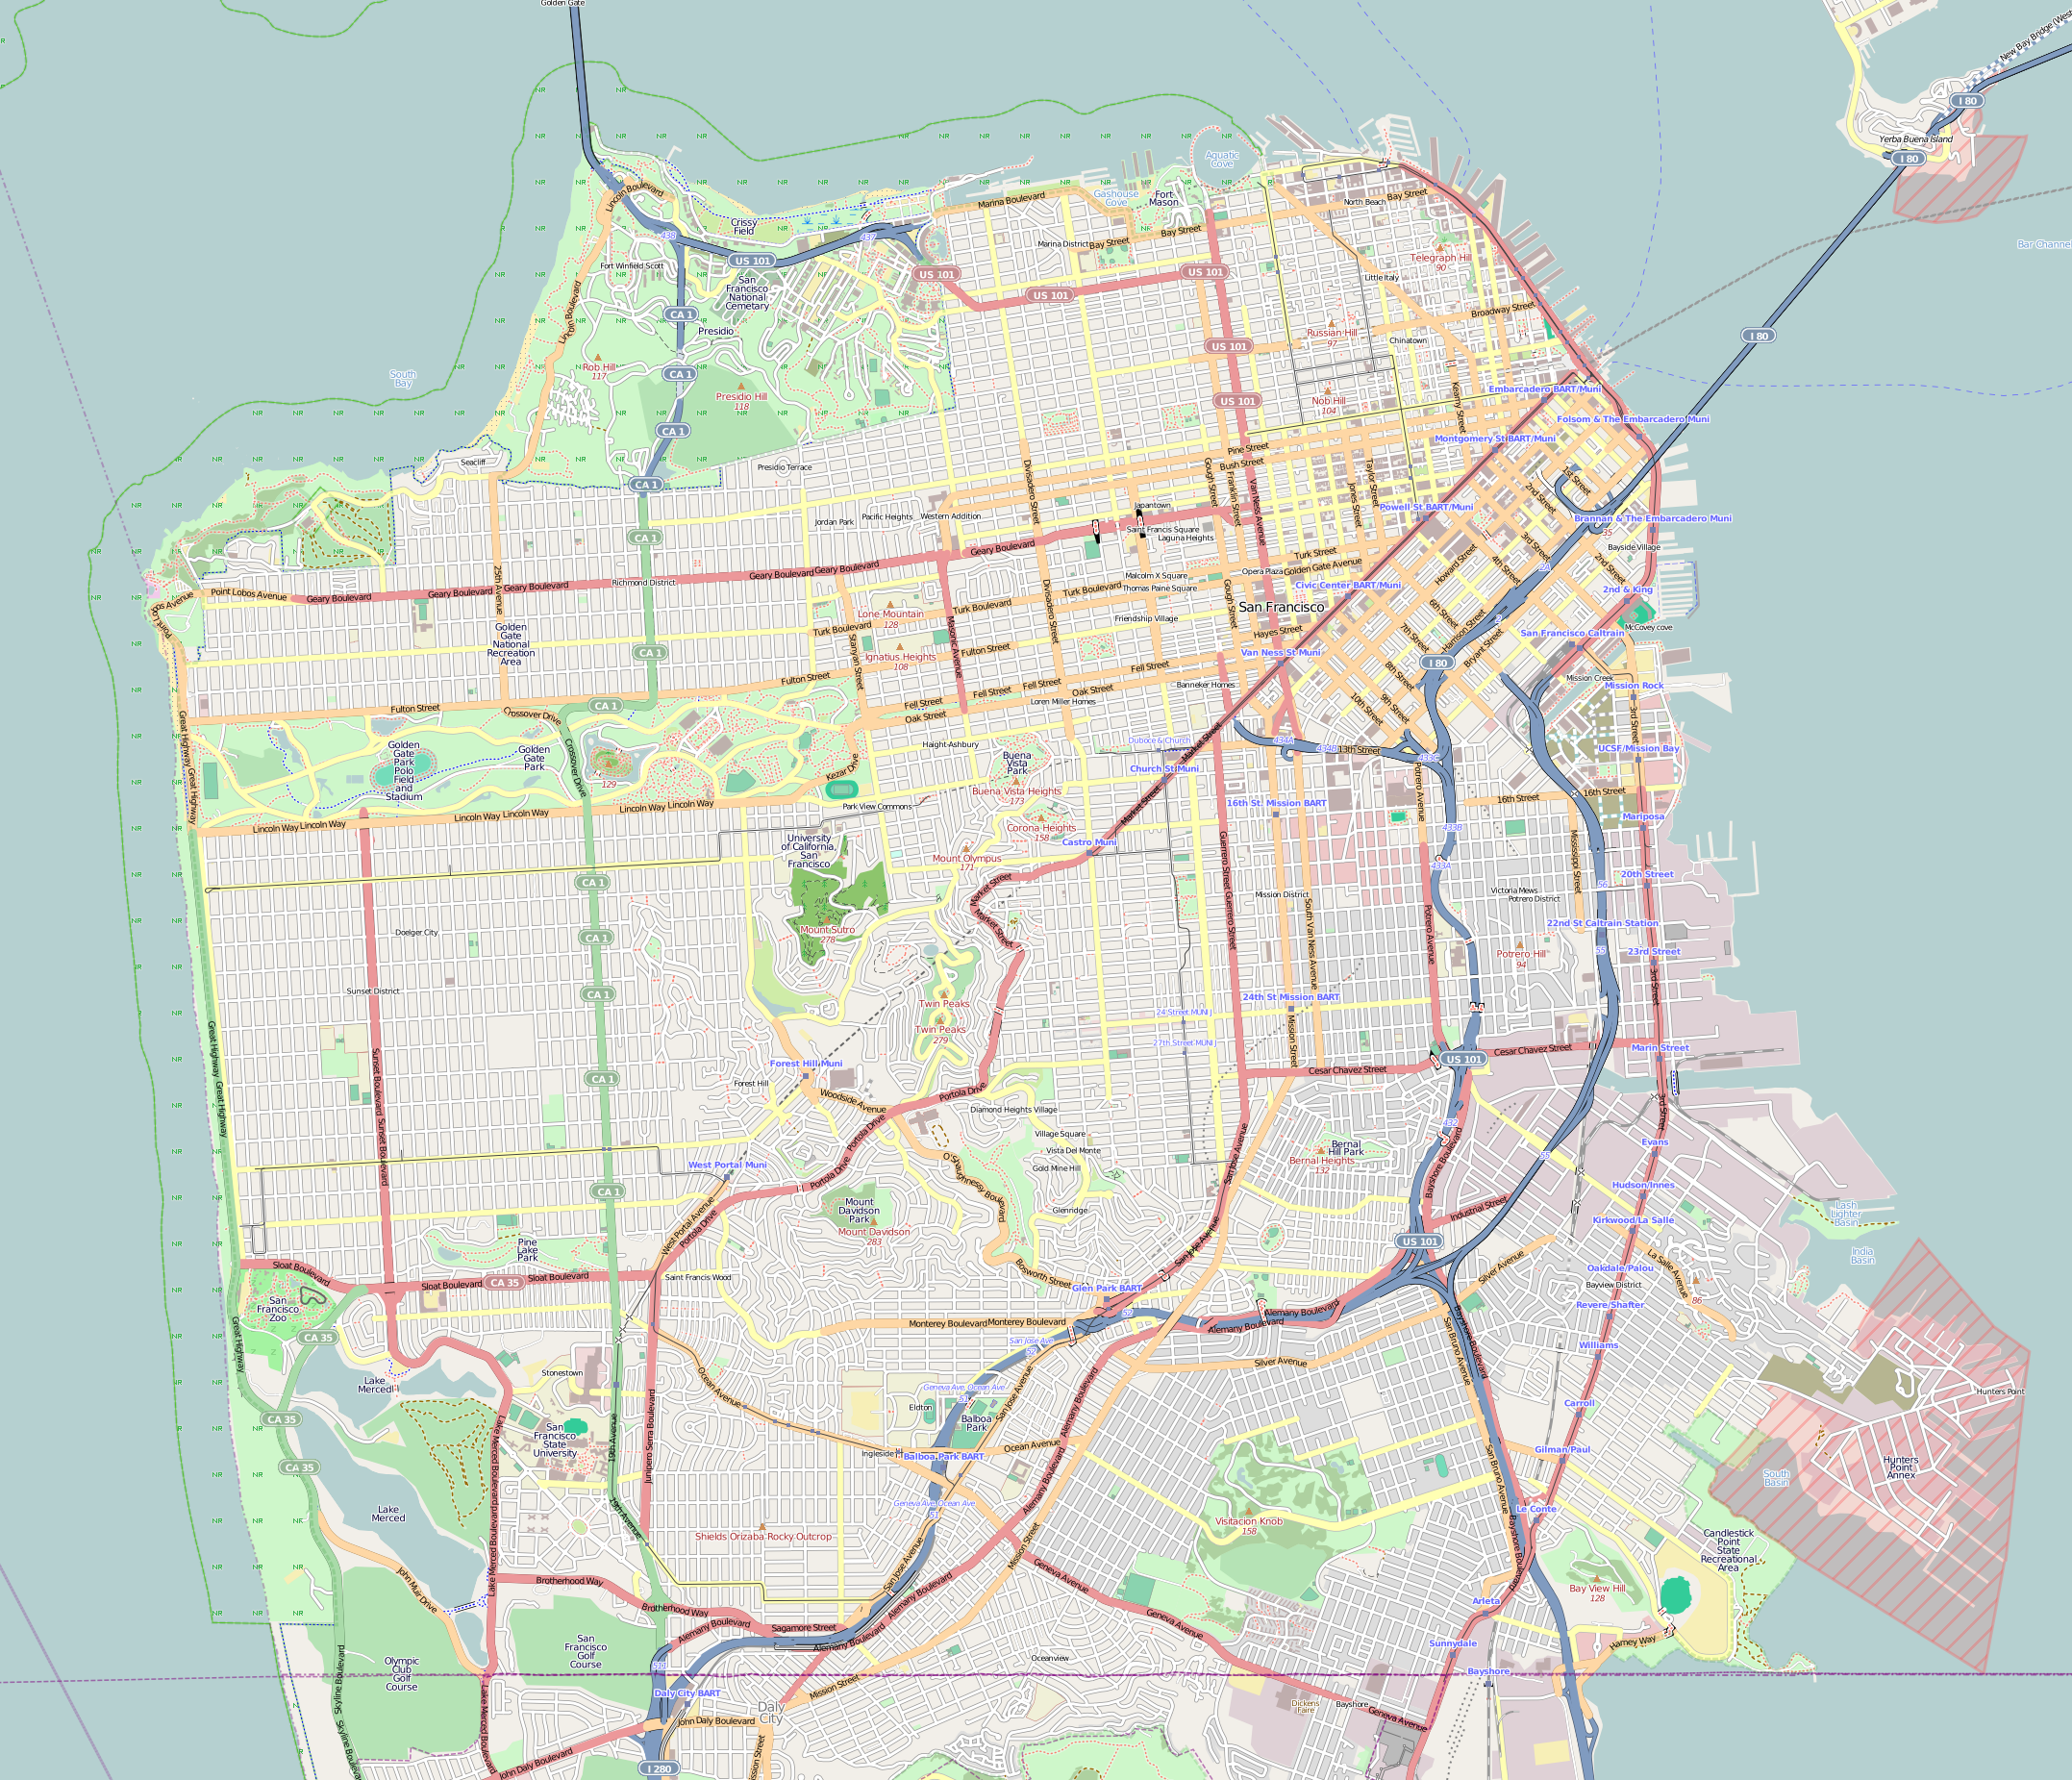 Excelsior District, San Francisco - Wikipedia on chicago map, kansas city map, northern ca map, omaha map, bay area map, detroit map, berkeley map, united states map, sydney australia map, dallas map, new york map, san diego, boston map, california map, sausalito map, london map, new orleans map, usa map, salt lake city map, tokyo map, golden gate park map, las vegas map, los angeles map,